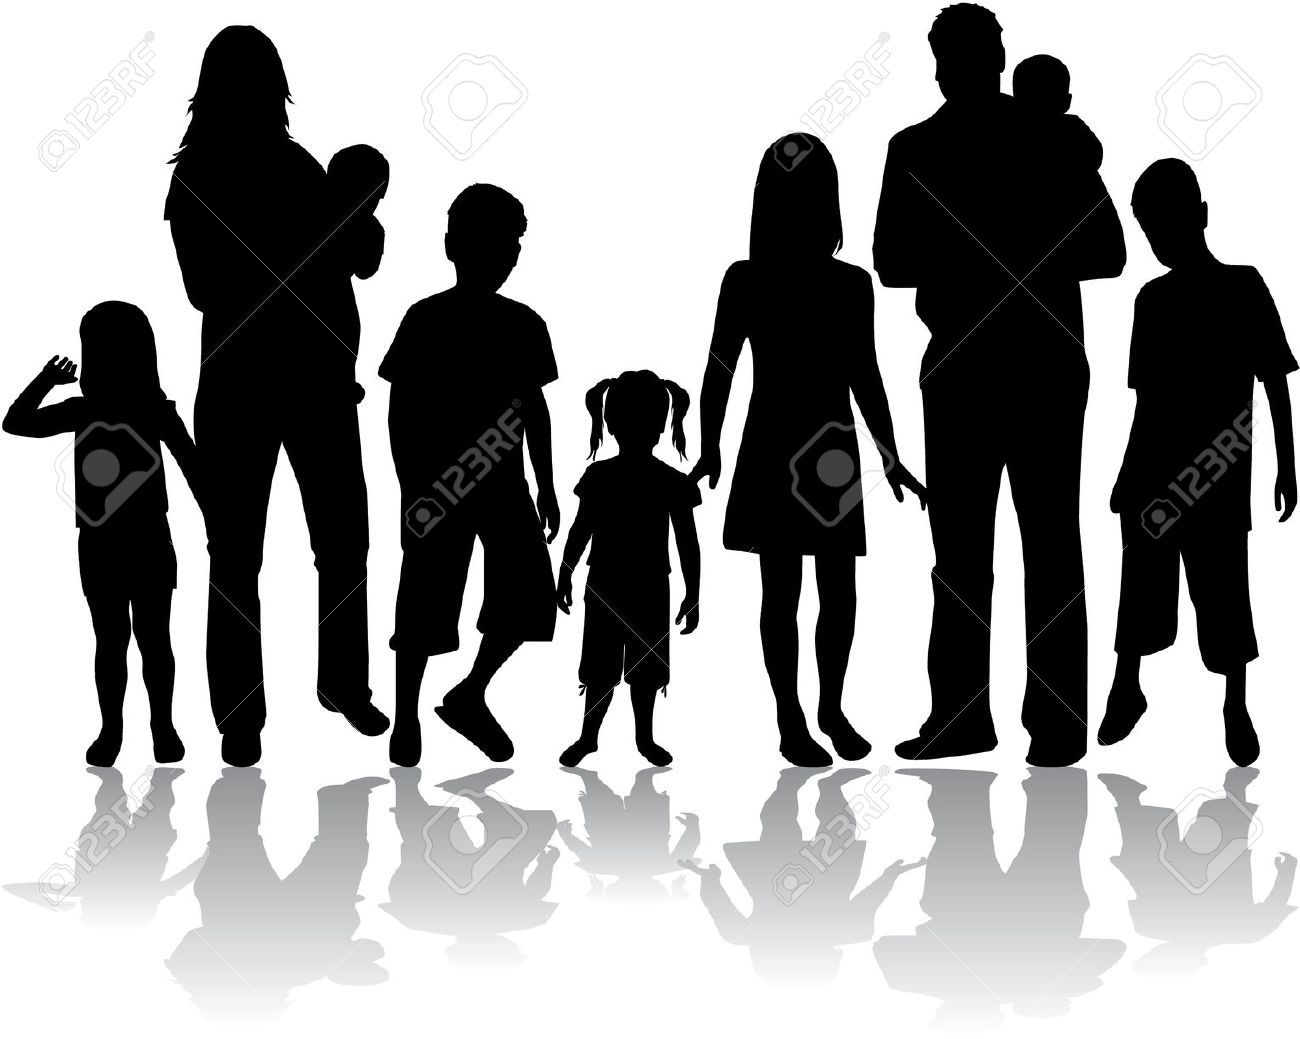 large family: Profiles of large family I-large family: Profiles of large family Illustration-12